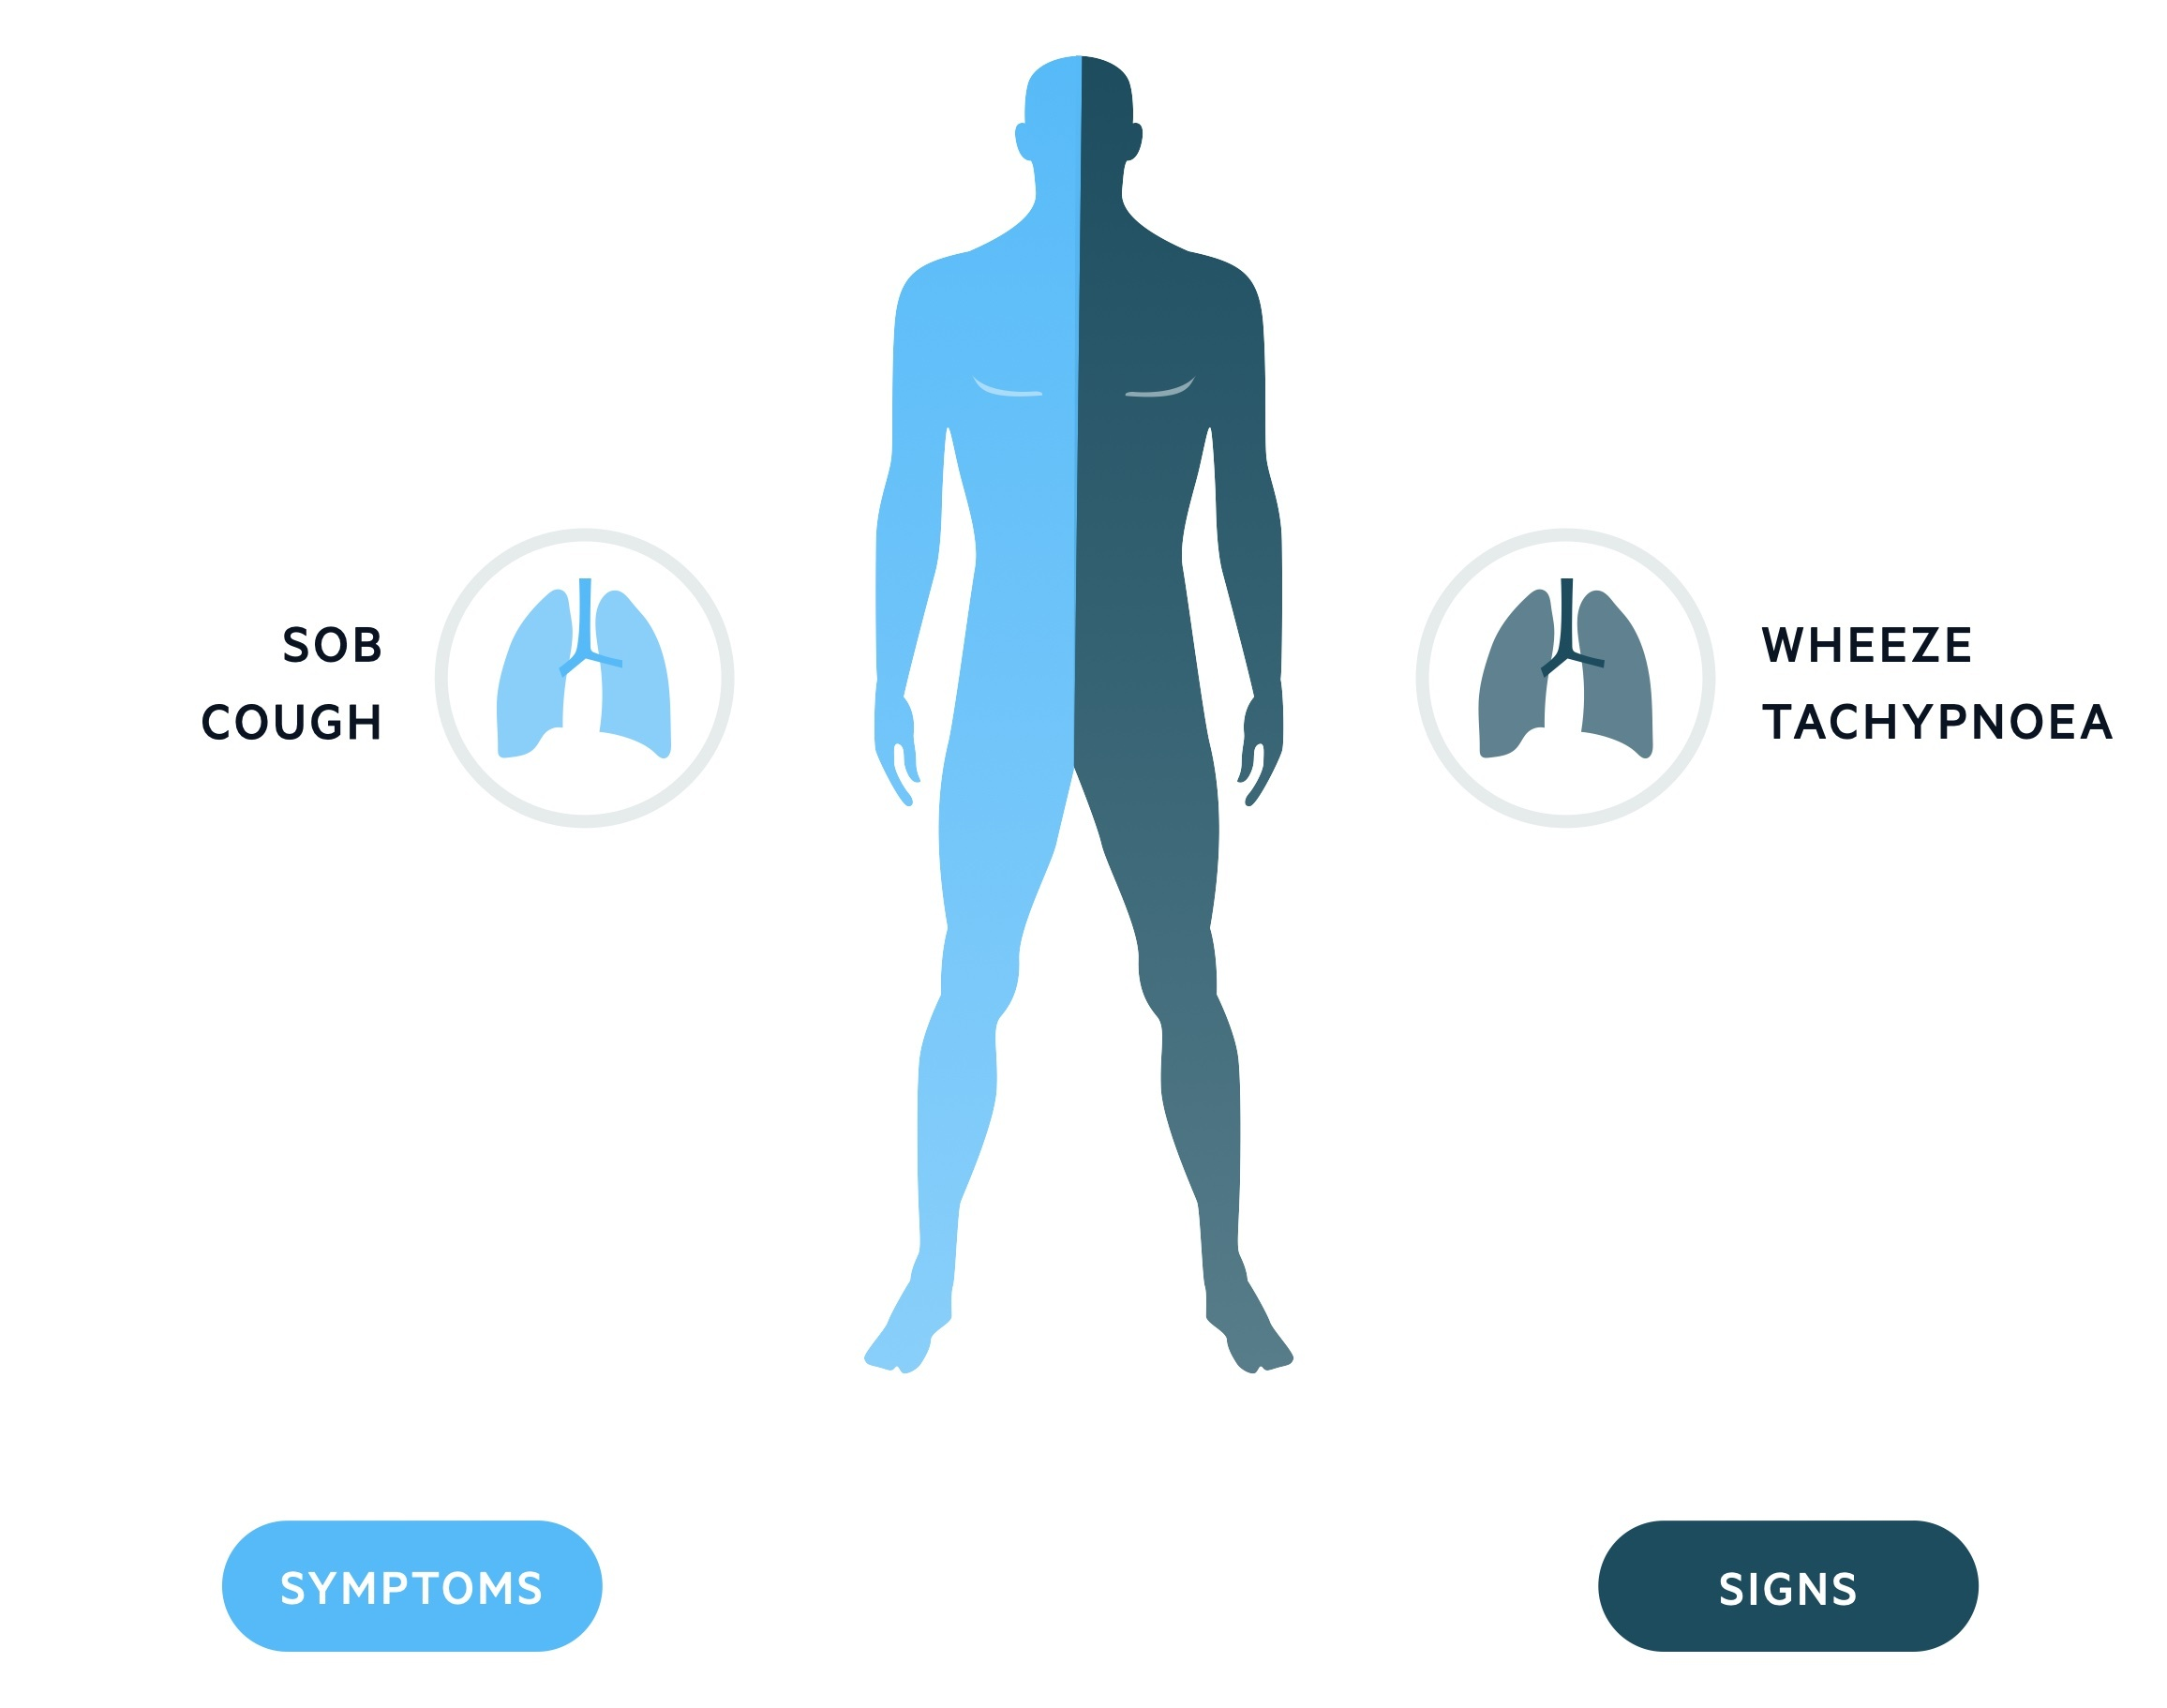 Clinical features of asthma